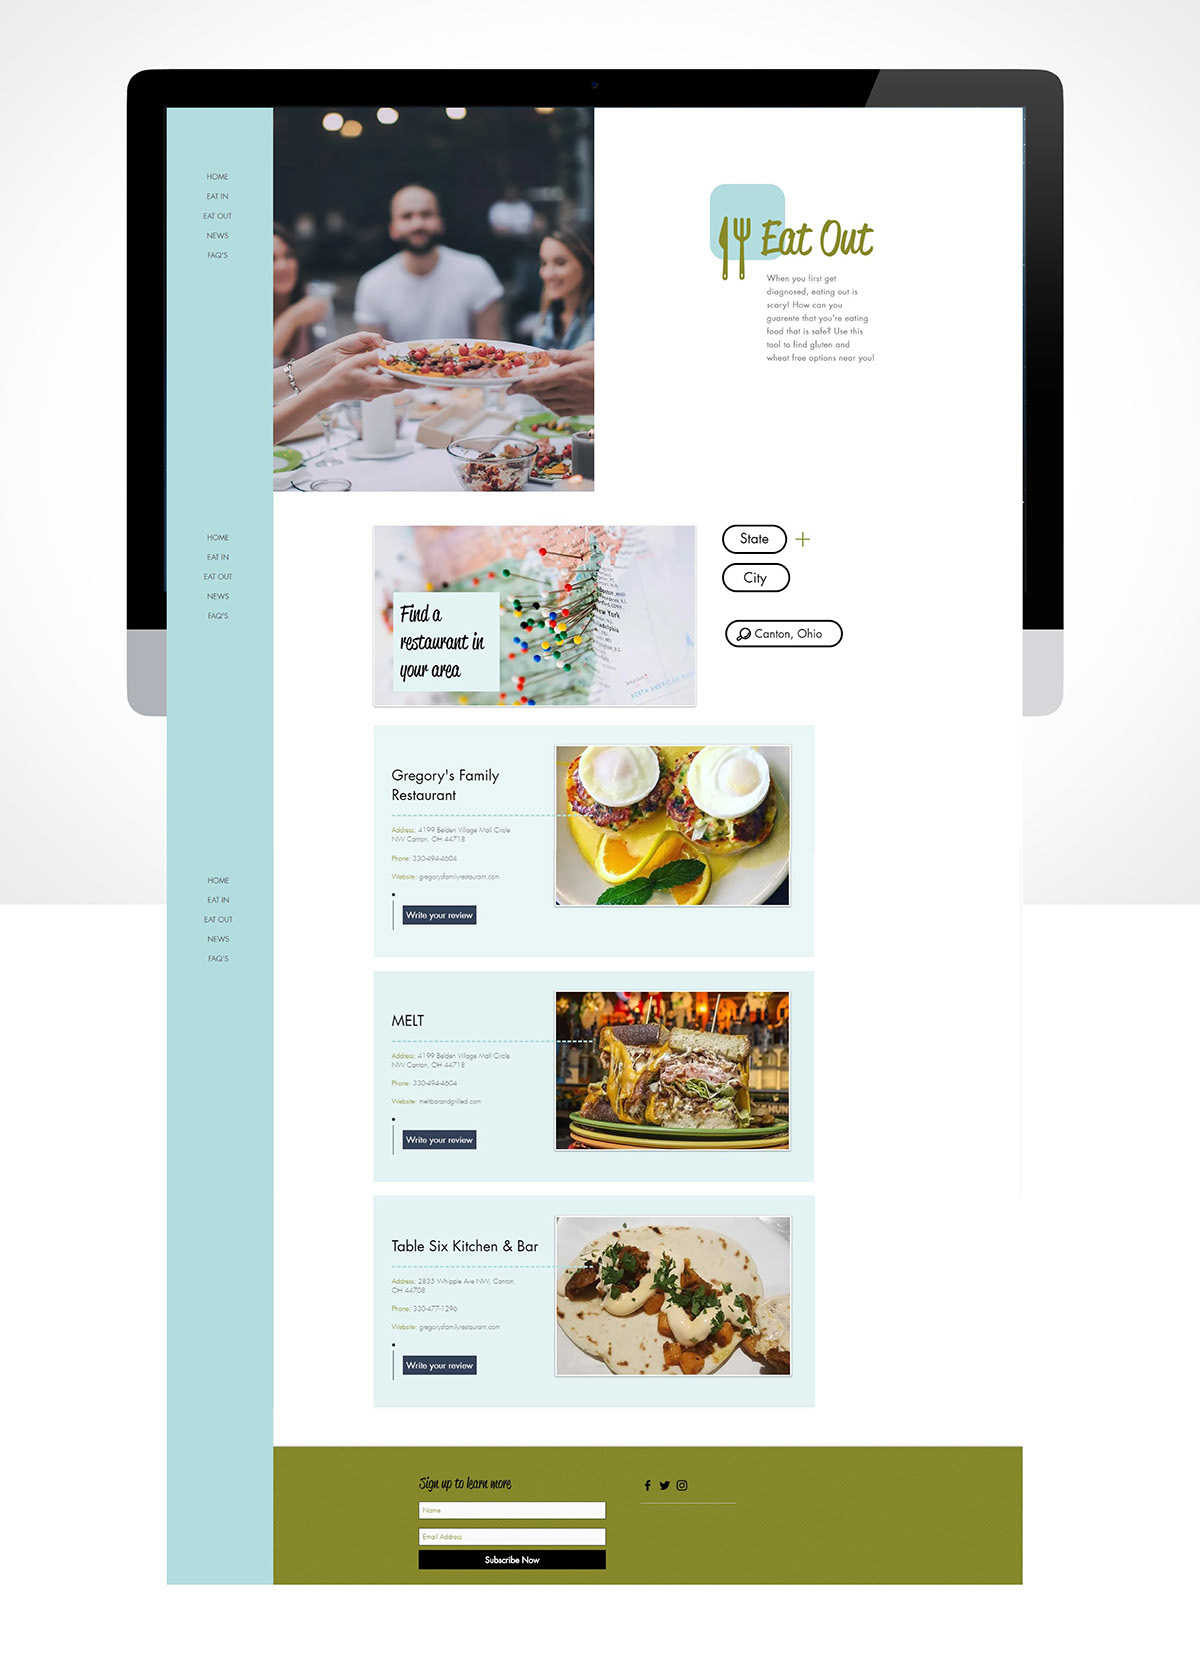 Website design created by a student.